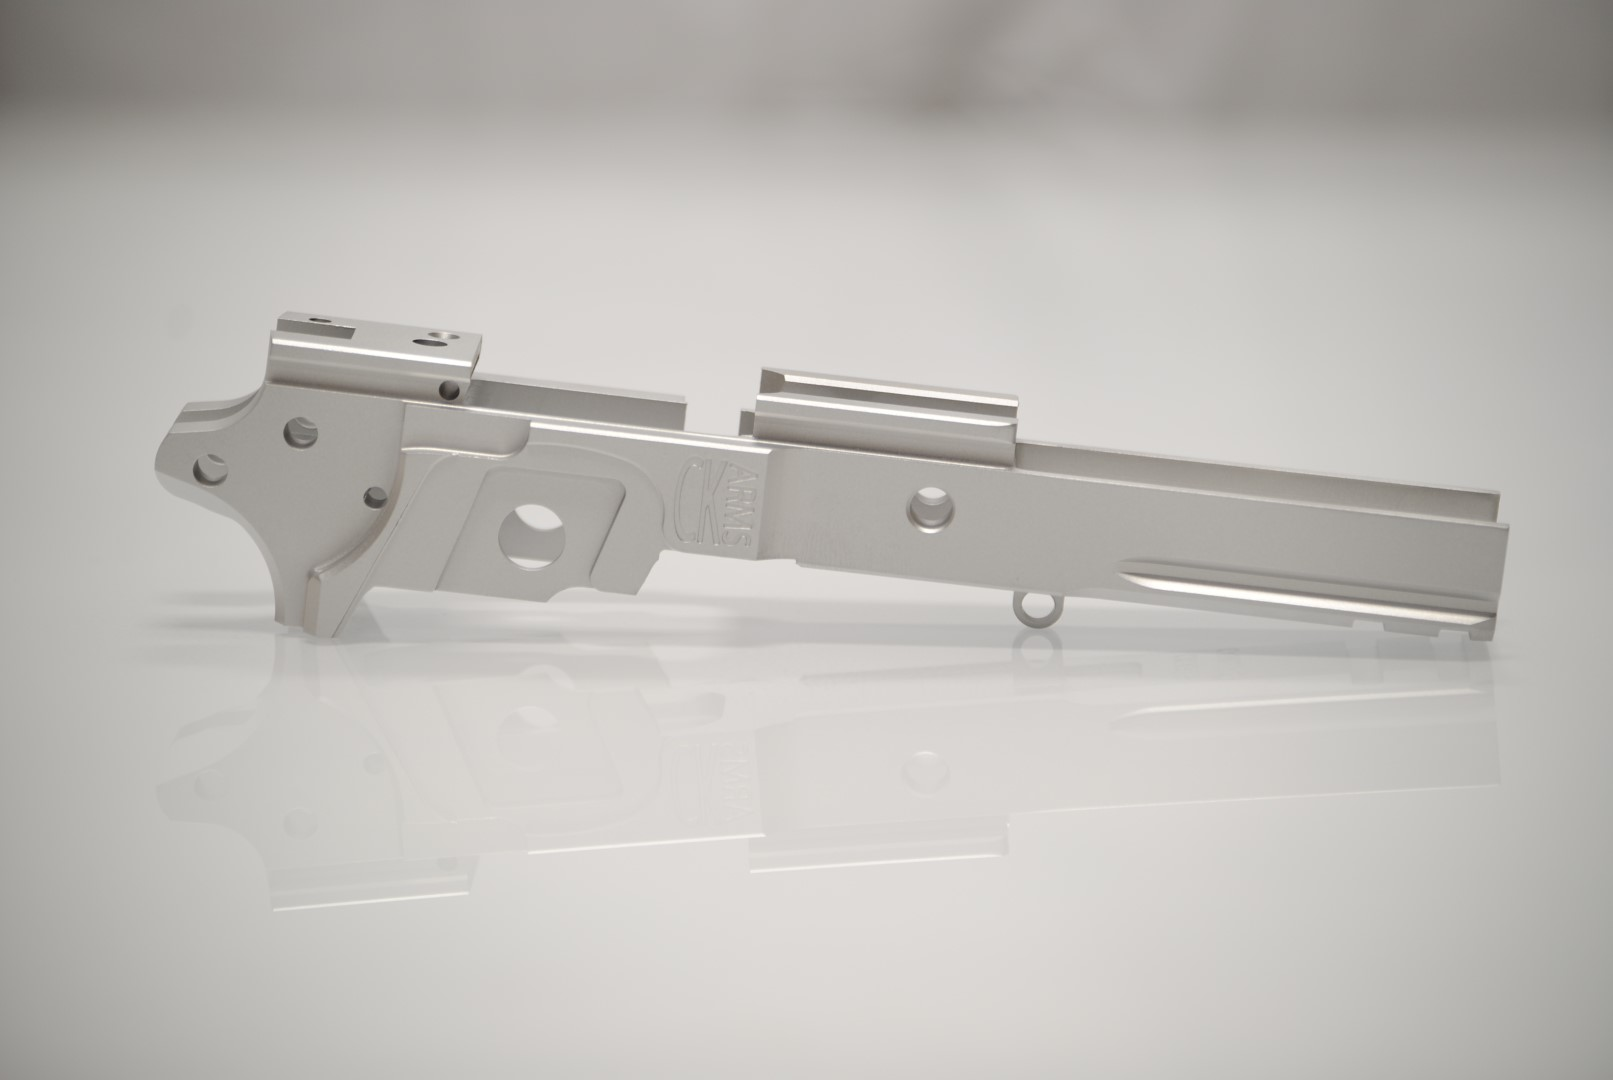 CK Arms Frame Widebody Classic Light-Rail